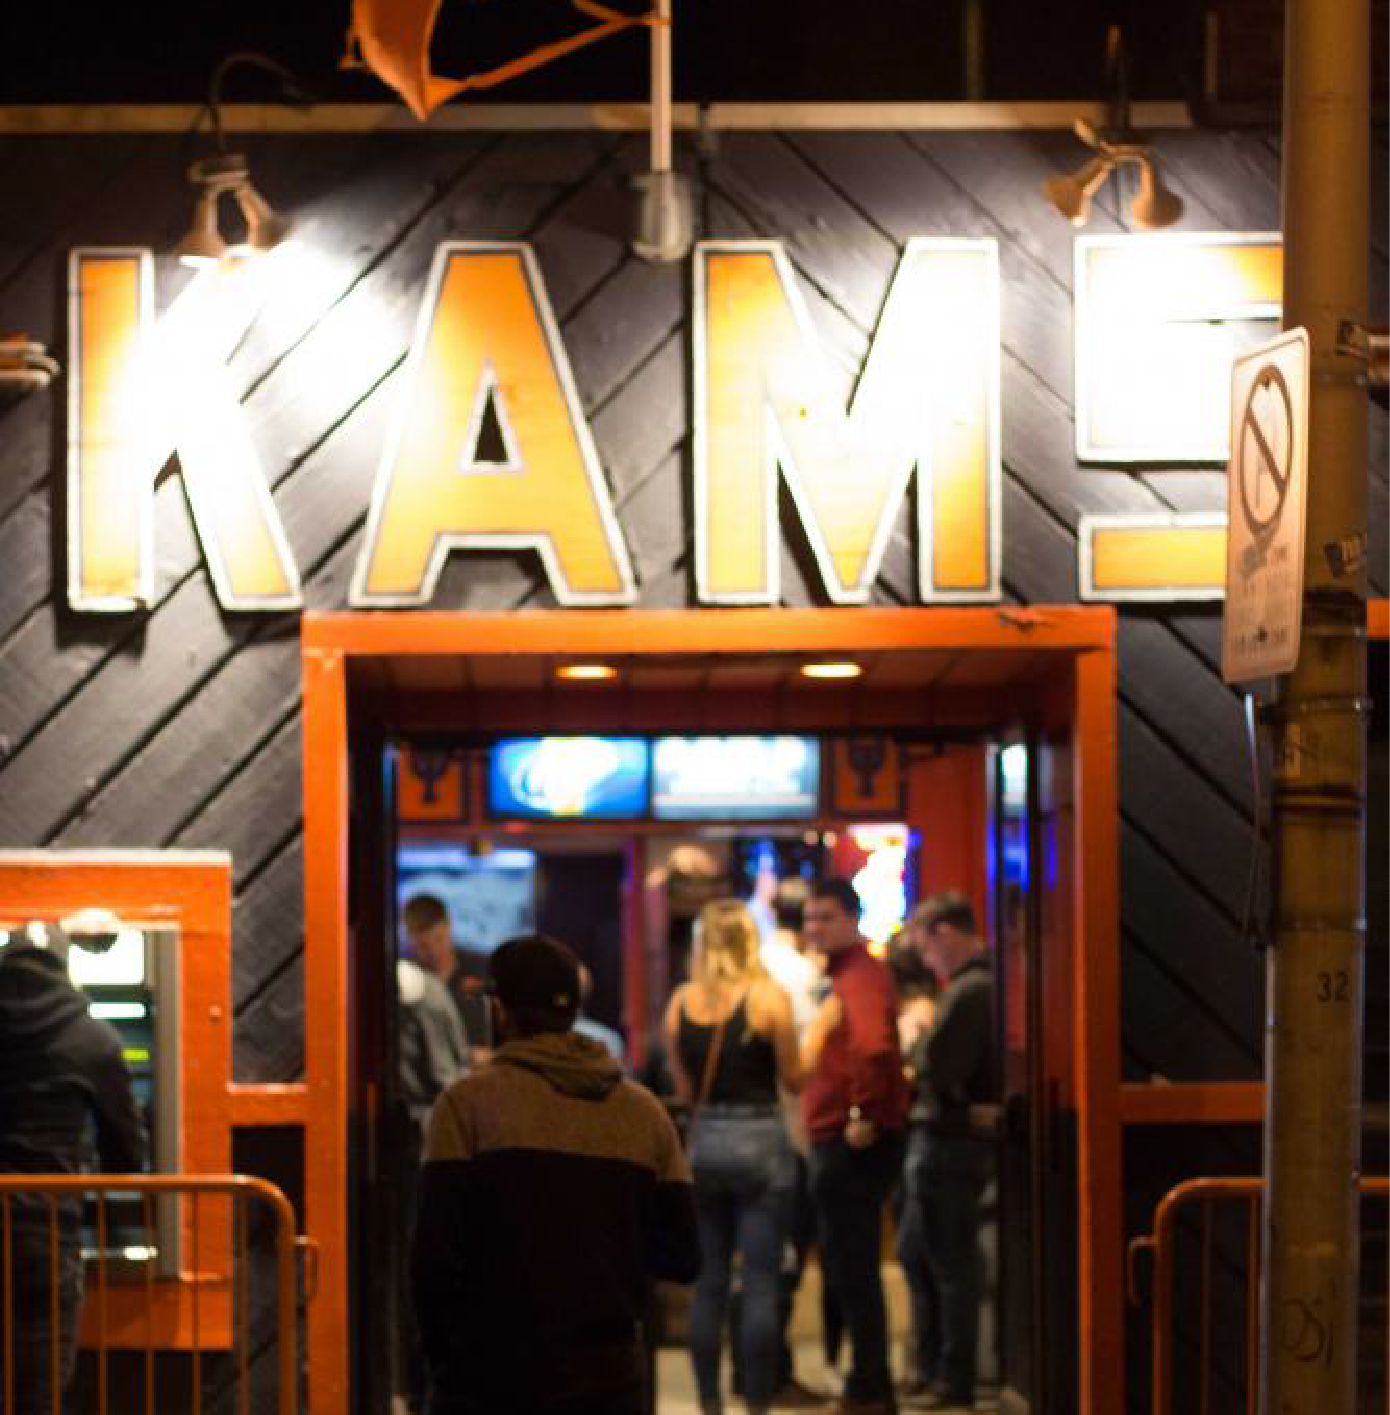 KAM's, located on E. Daniel St. in Champaign, is now under new ownership but has no plans to run differently.